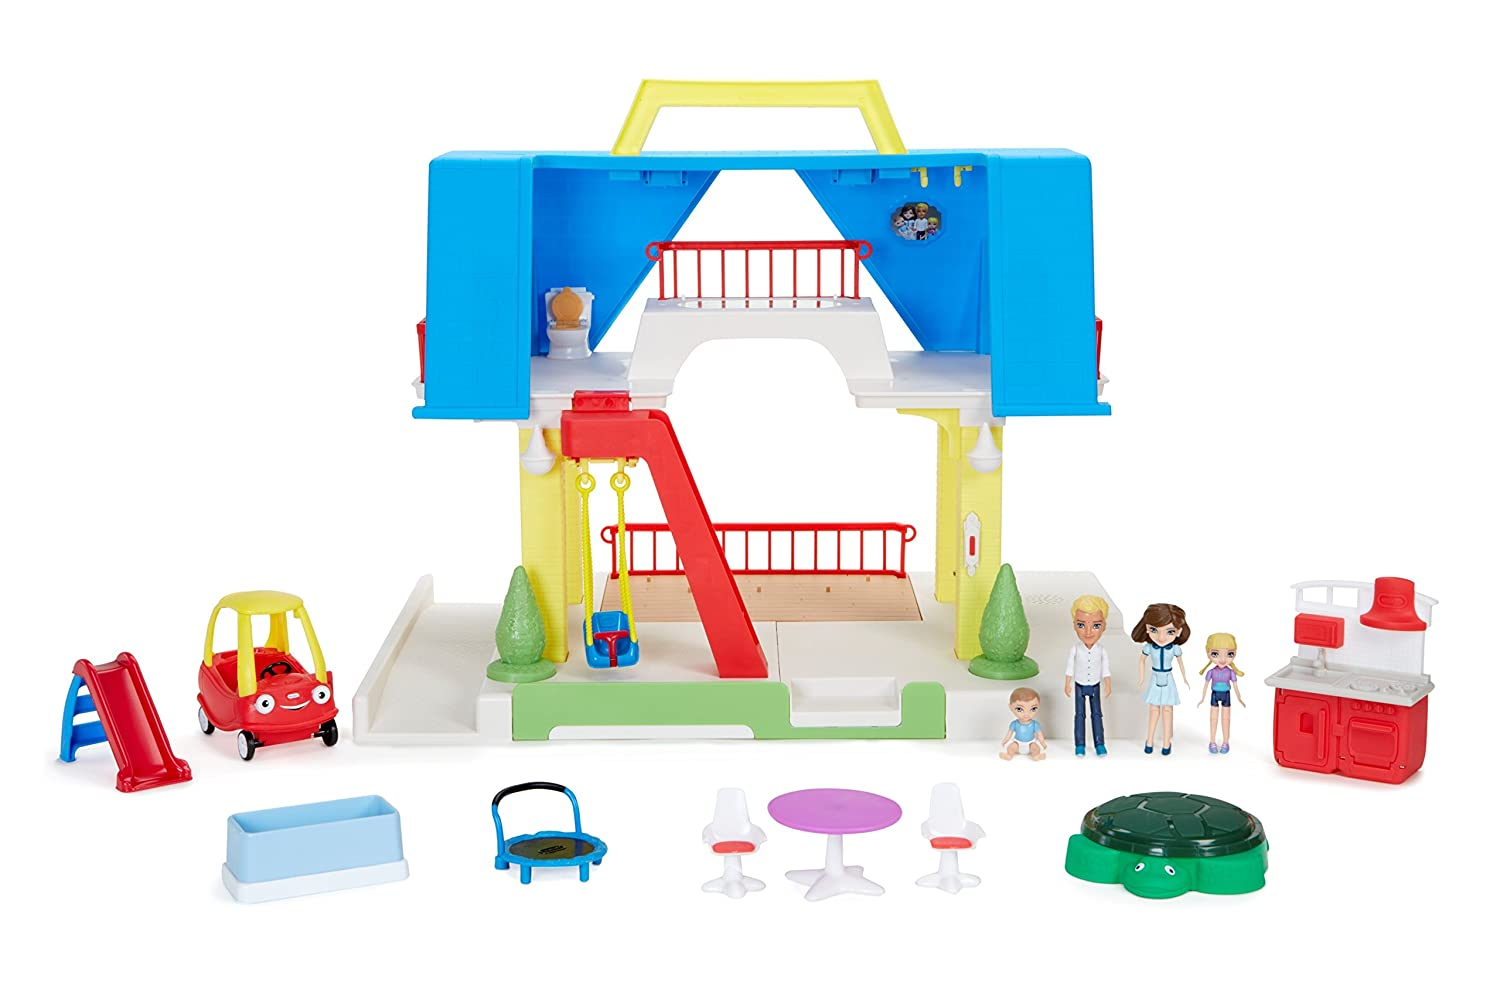 Little Tikes Place Toy MGA Entertainment 643286